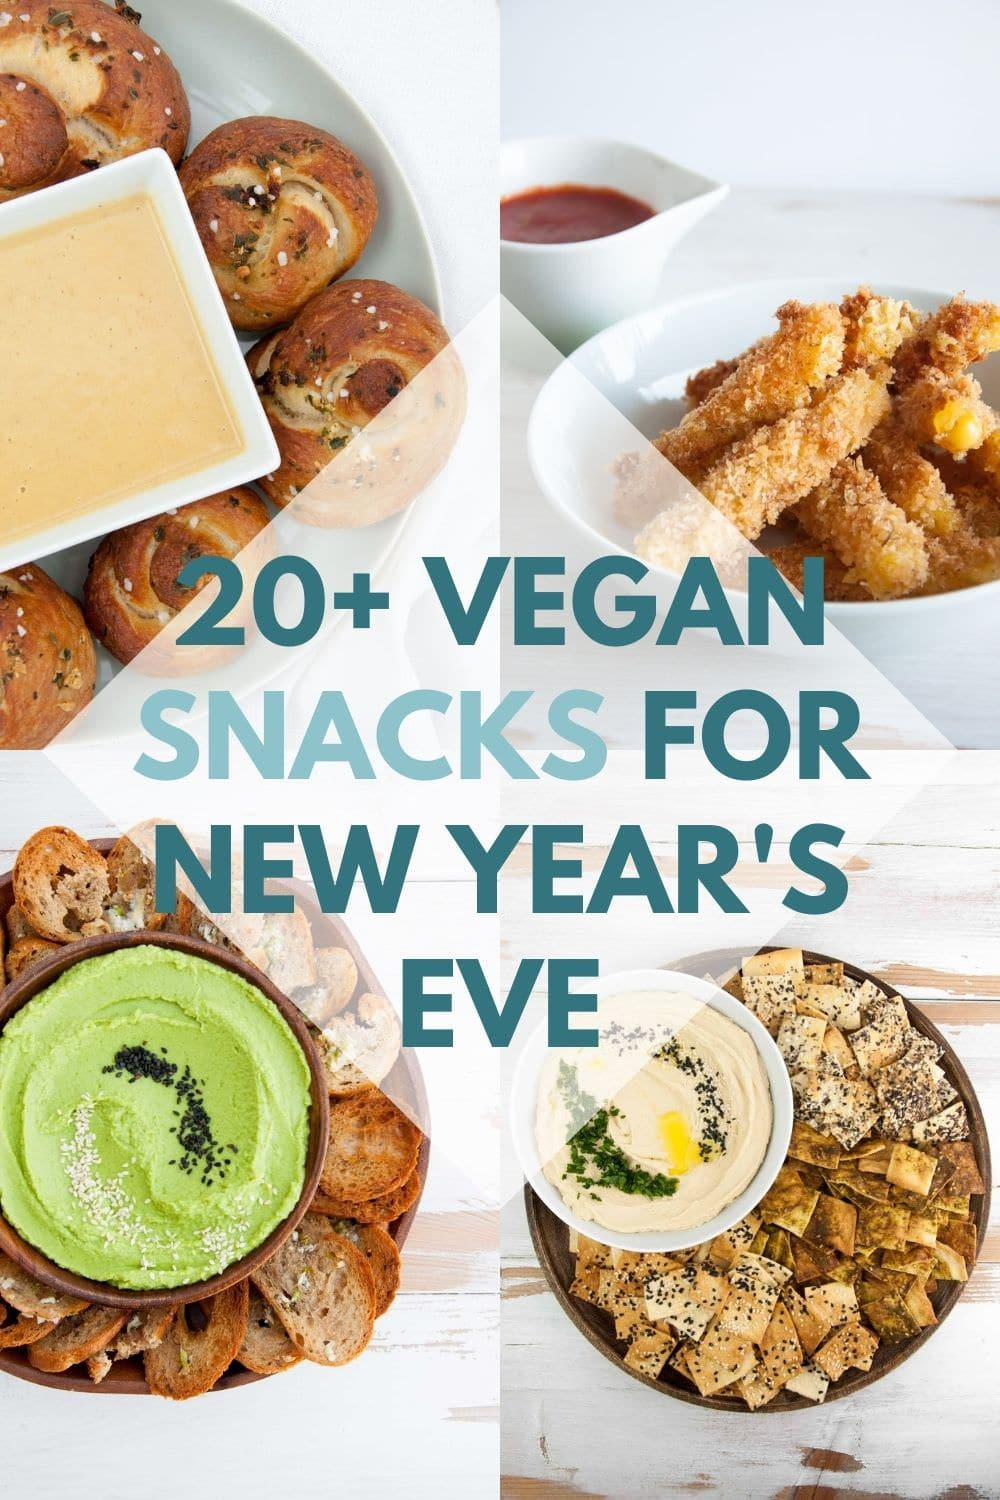 Vegan Snacks for New Years Eve